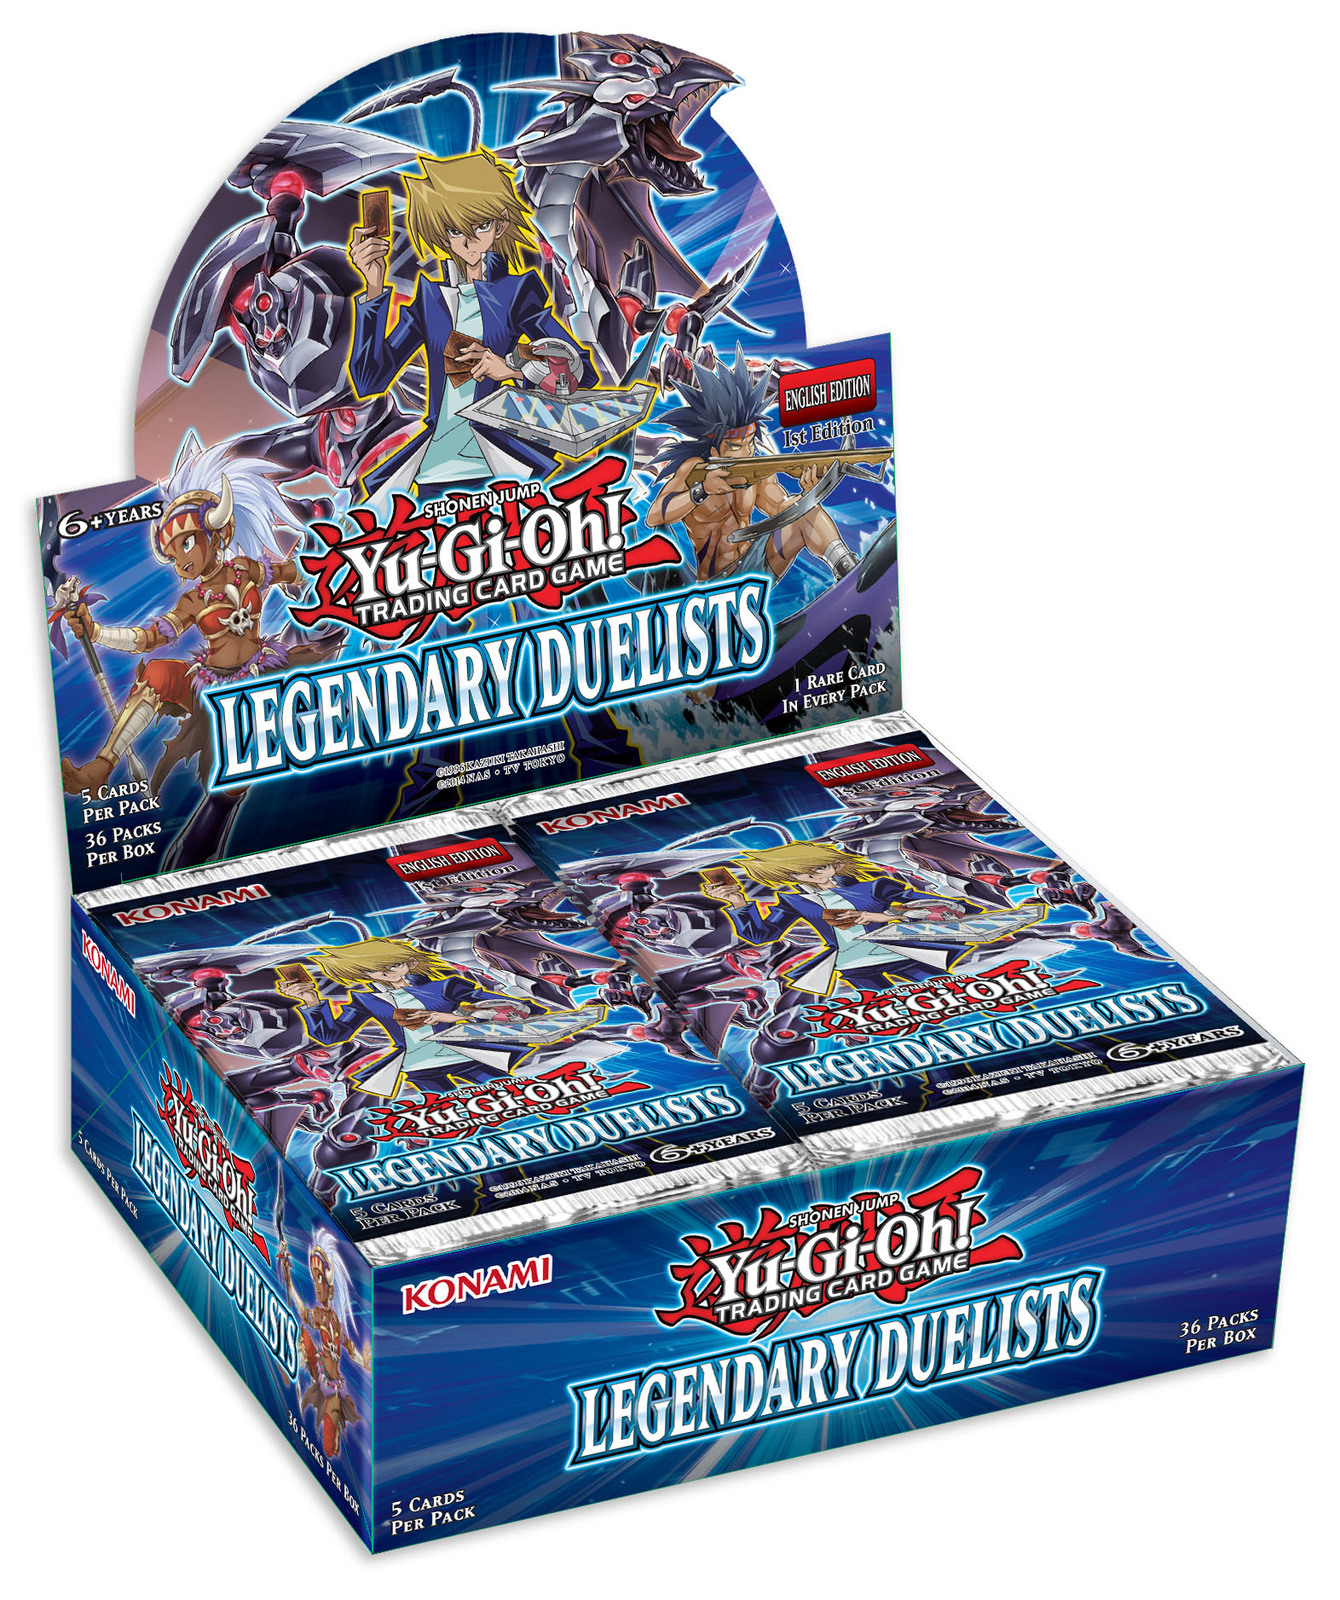 Yu-Gi-Oh! Legendary Duelists Booster Box image